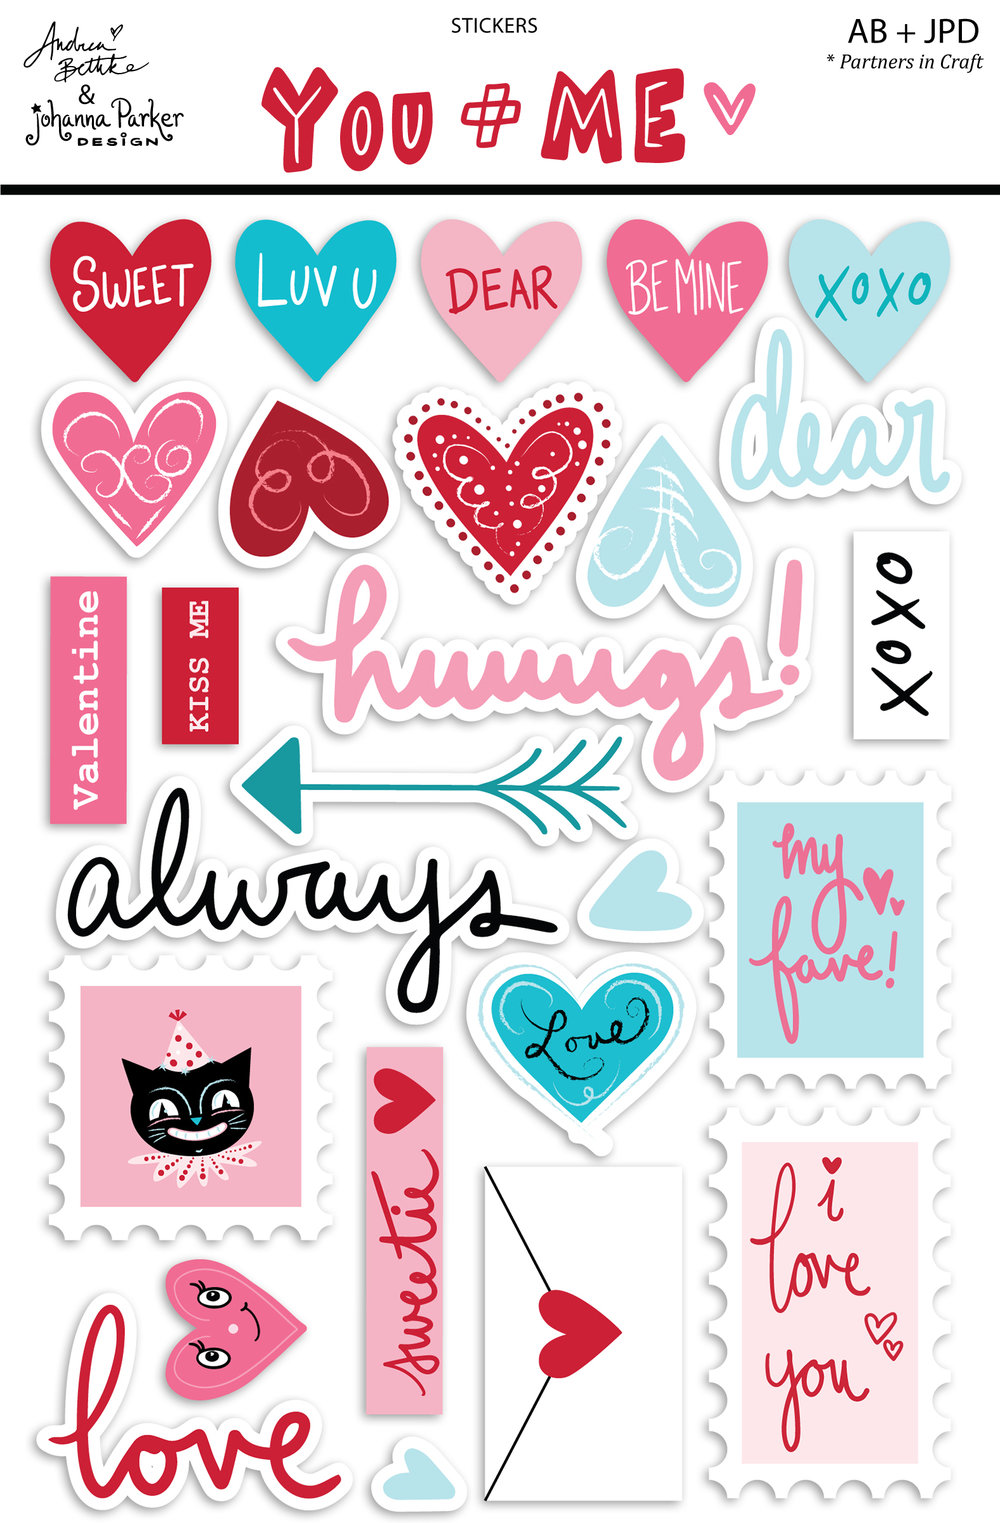 You + Me - Stickers with packaging.jpg